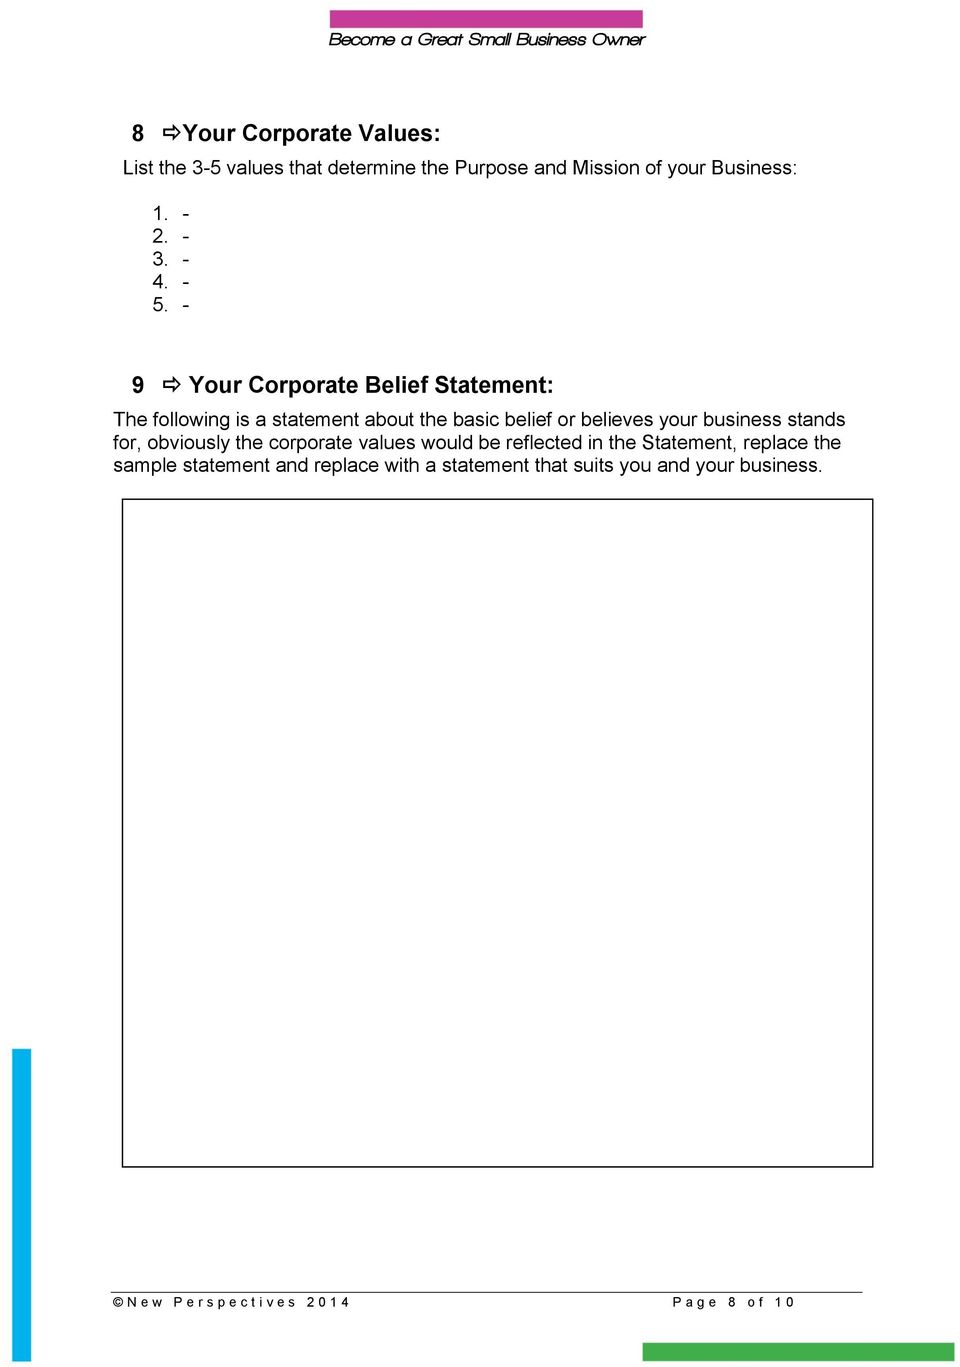 - 9 Your Corporate Belief Statement: The following is a statement about the basic belief or believes your business